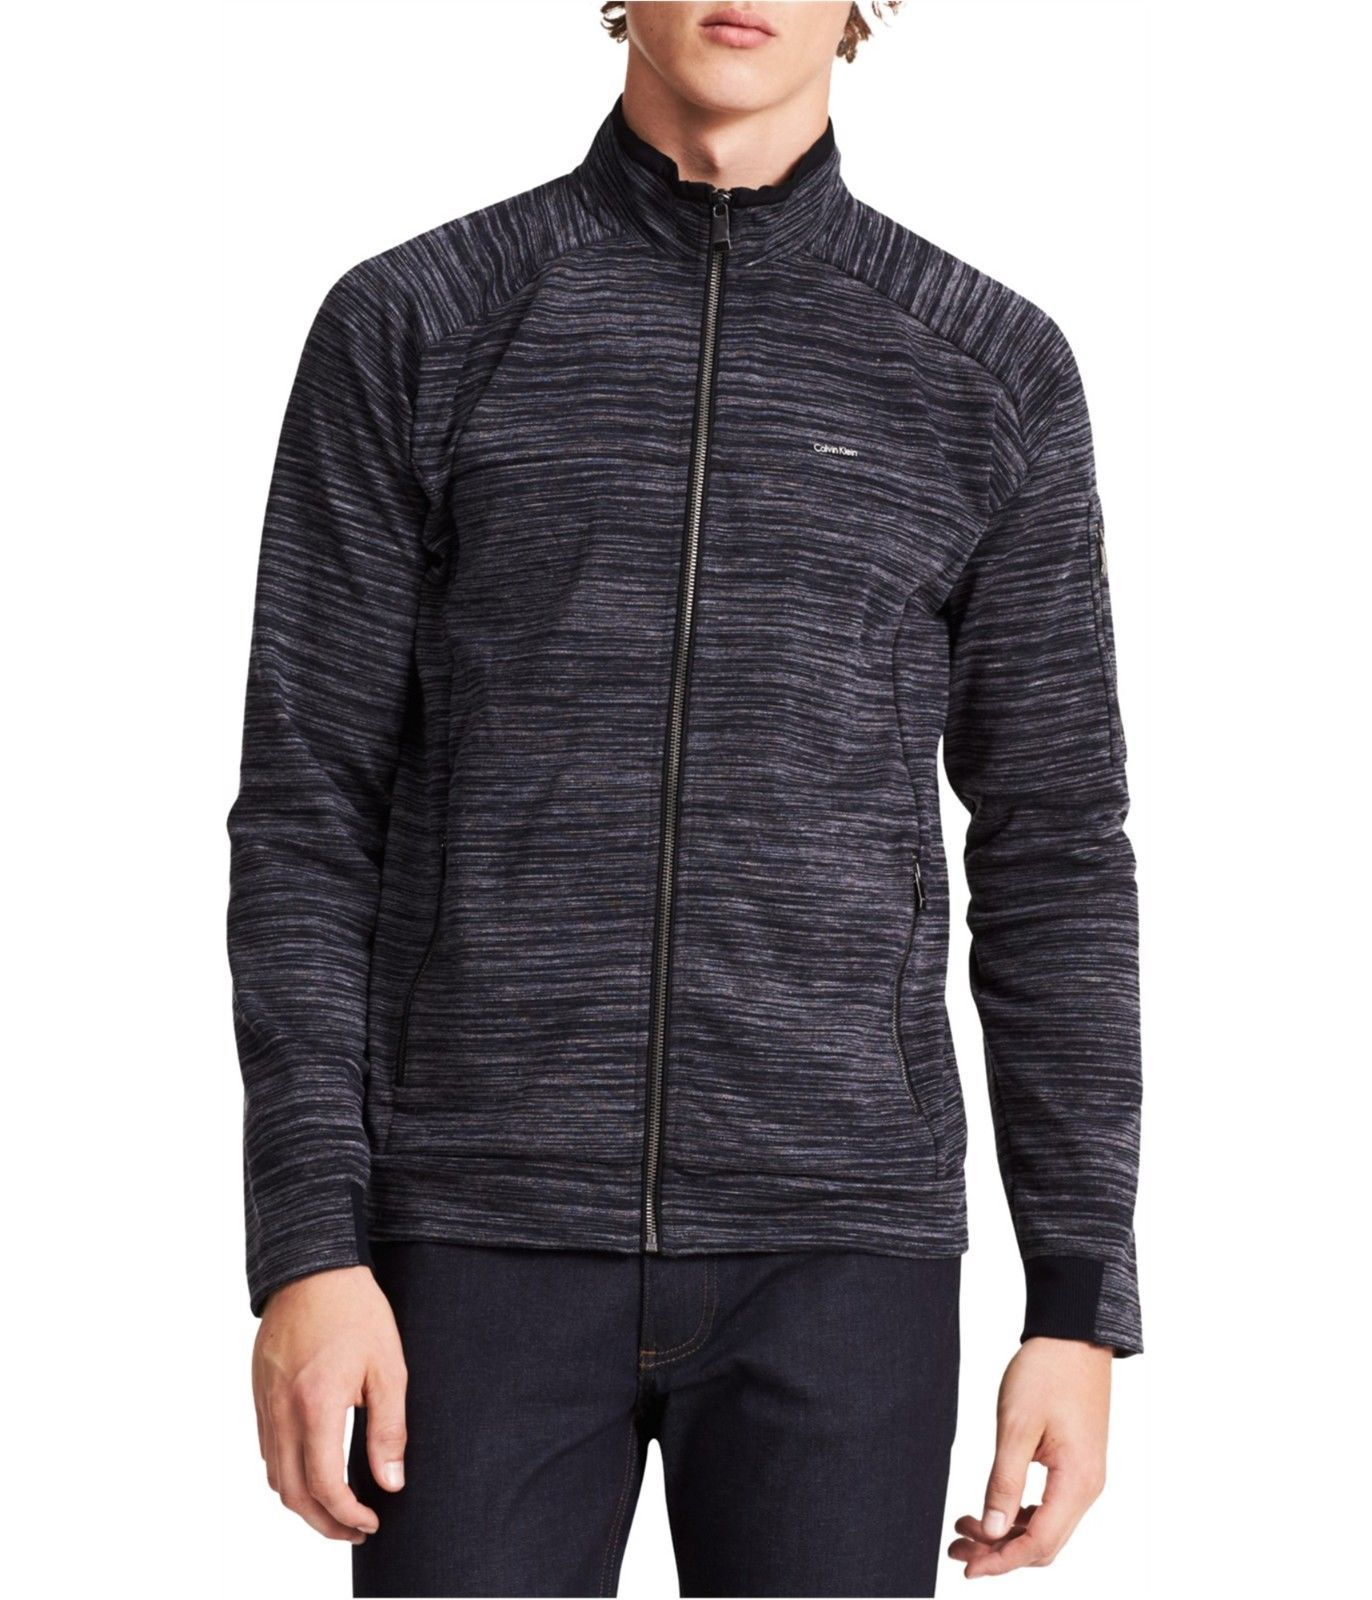 Calvin Klein Men's Space-Dye Front-Zip Jacket Black 2XL